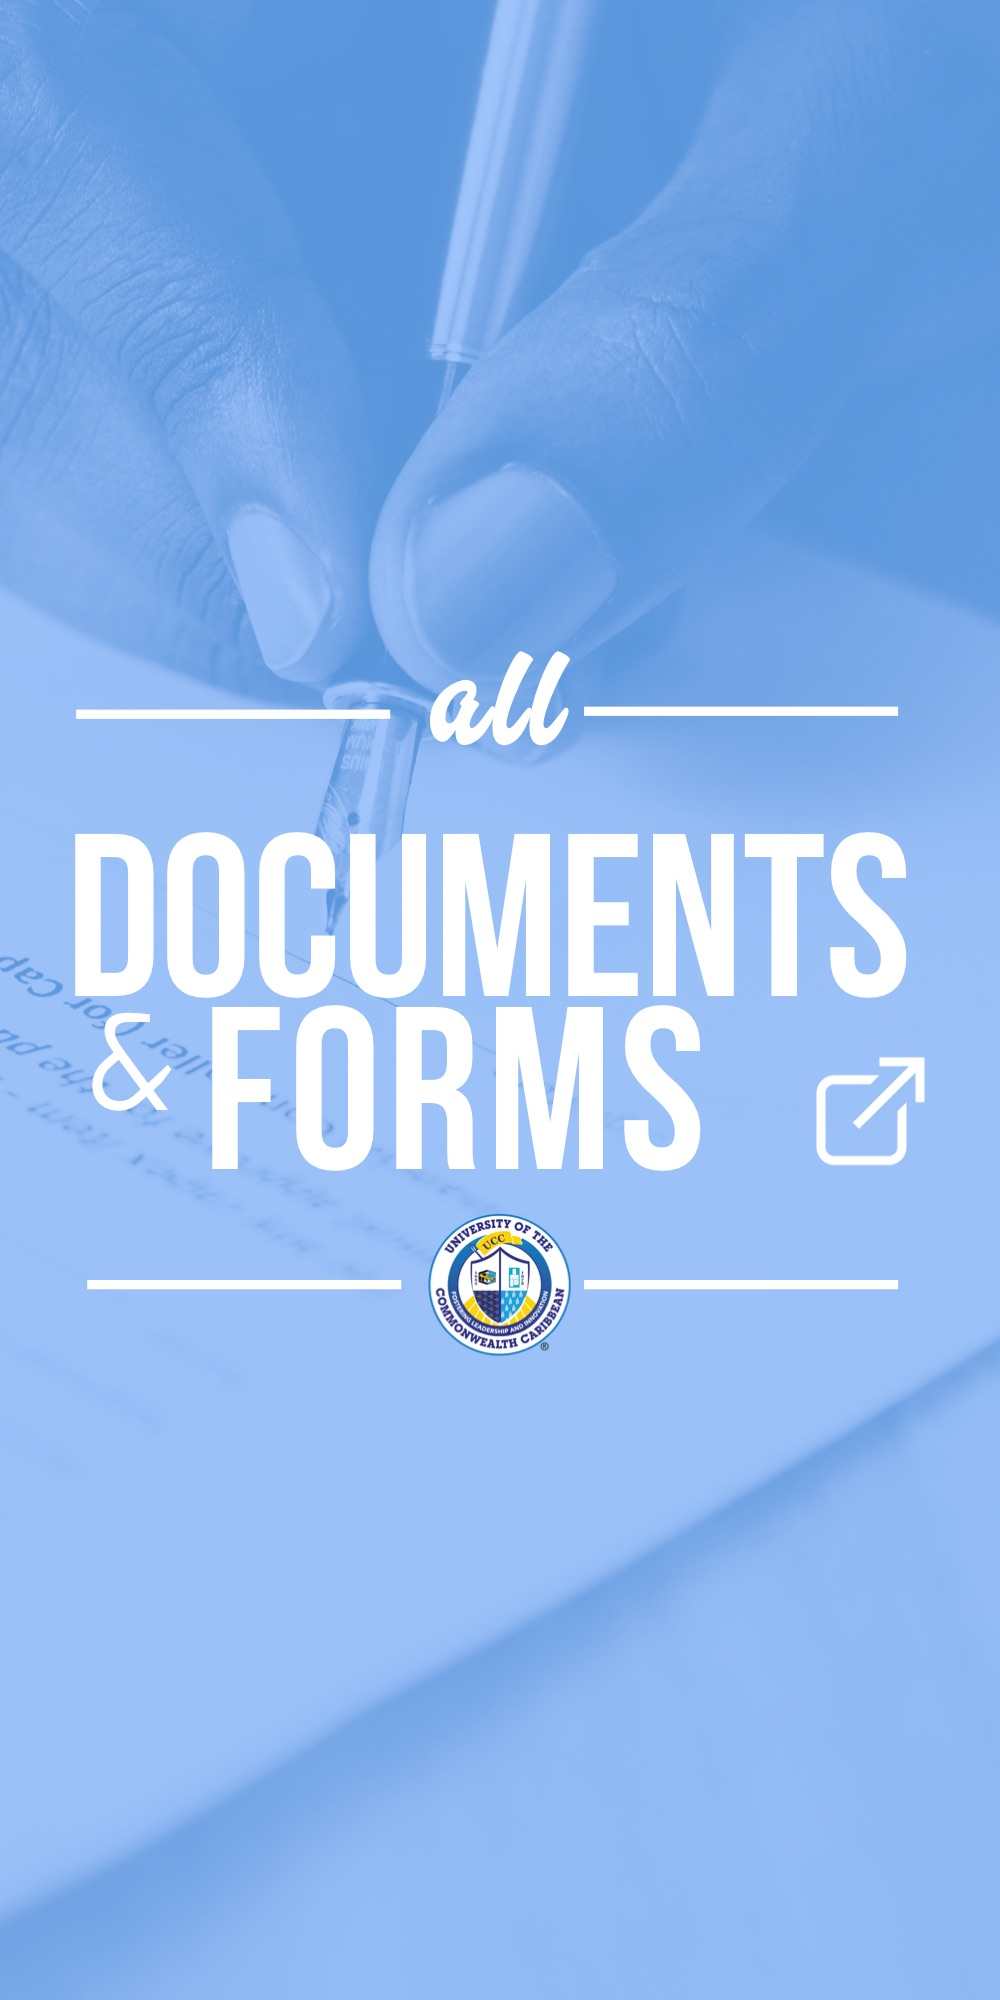 All Documents & Forms